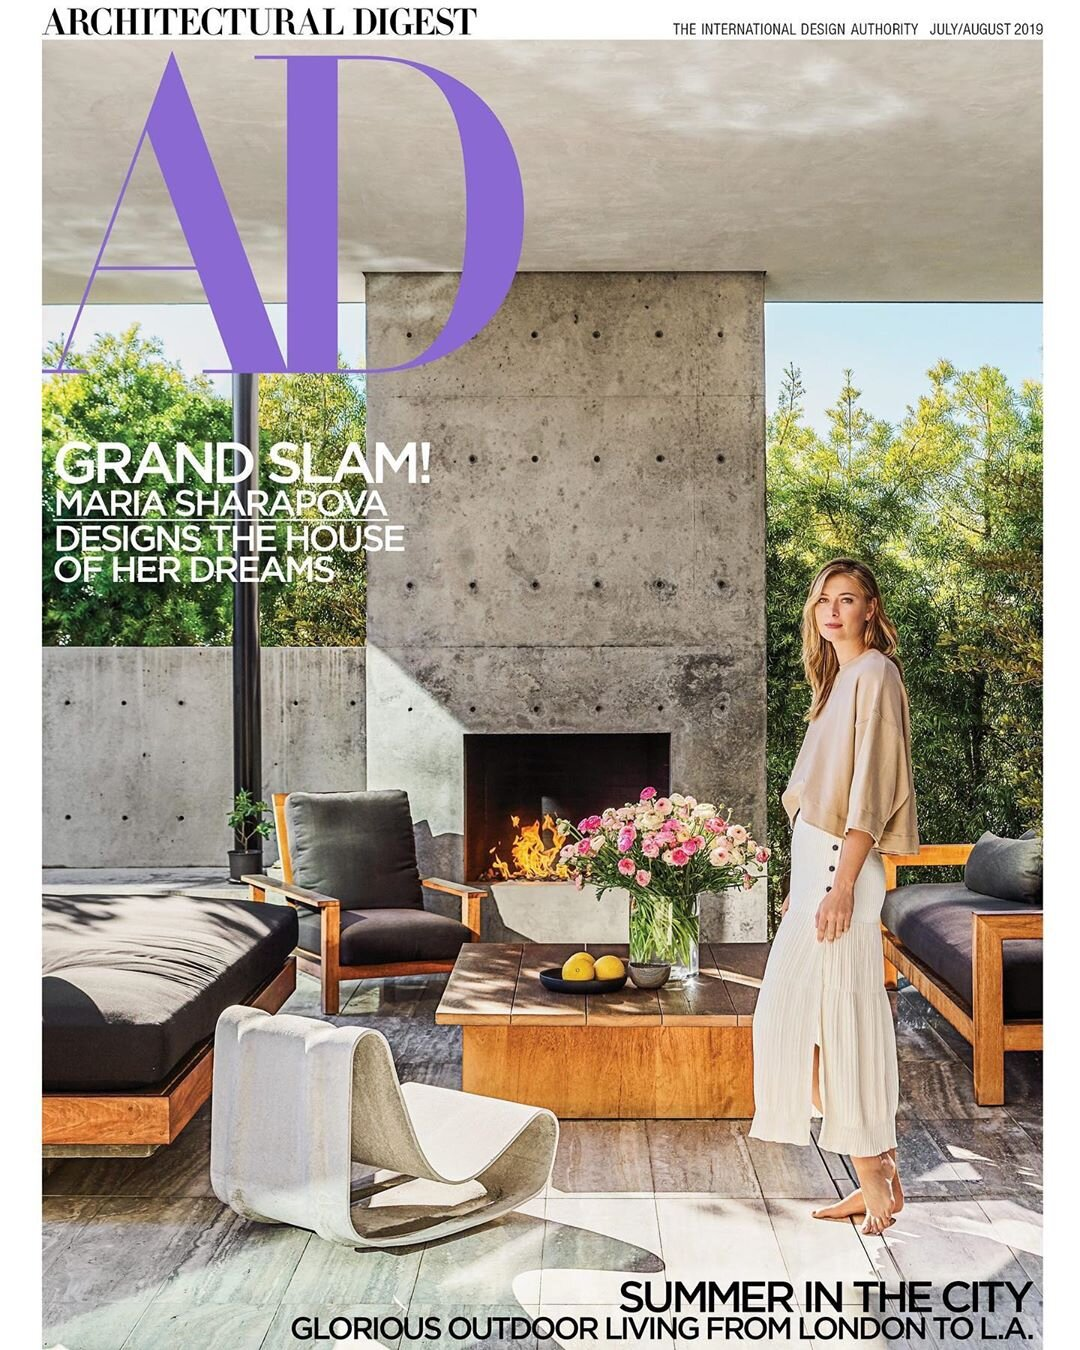 Our Years of Working With the Design Industries Top Photographers and Editors Connects Top Interior Designers and Creatives, to Getting Published! -